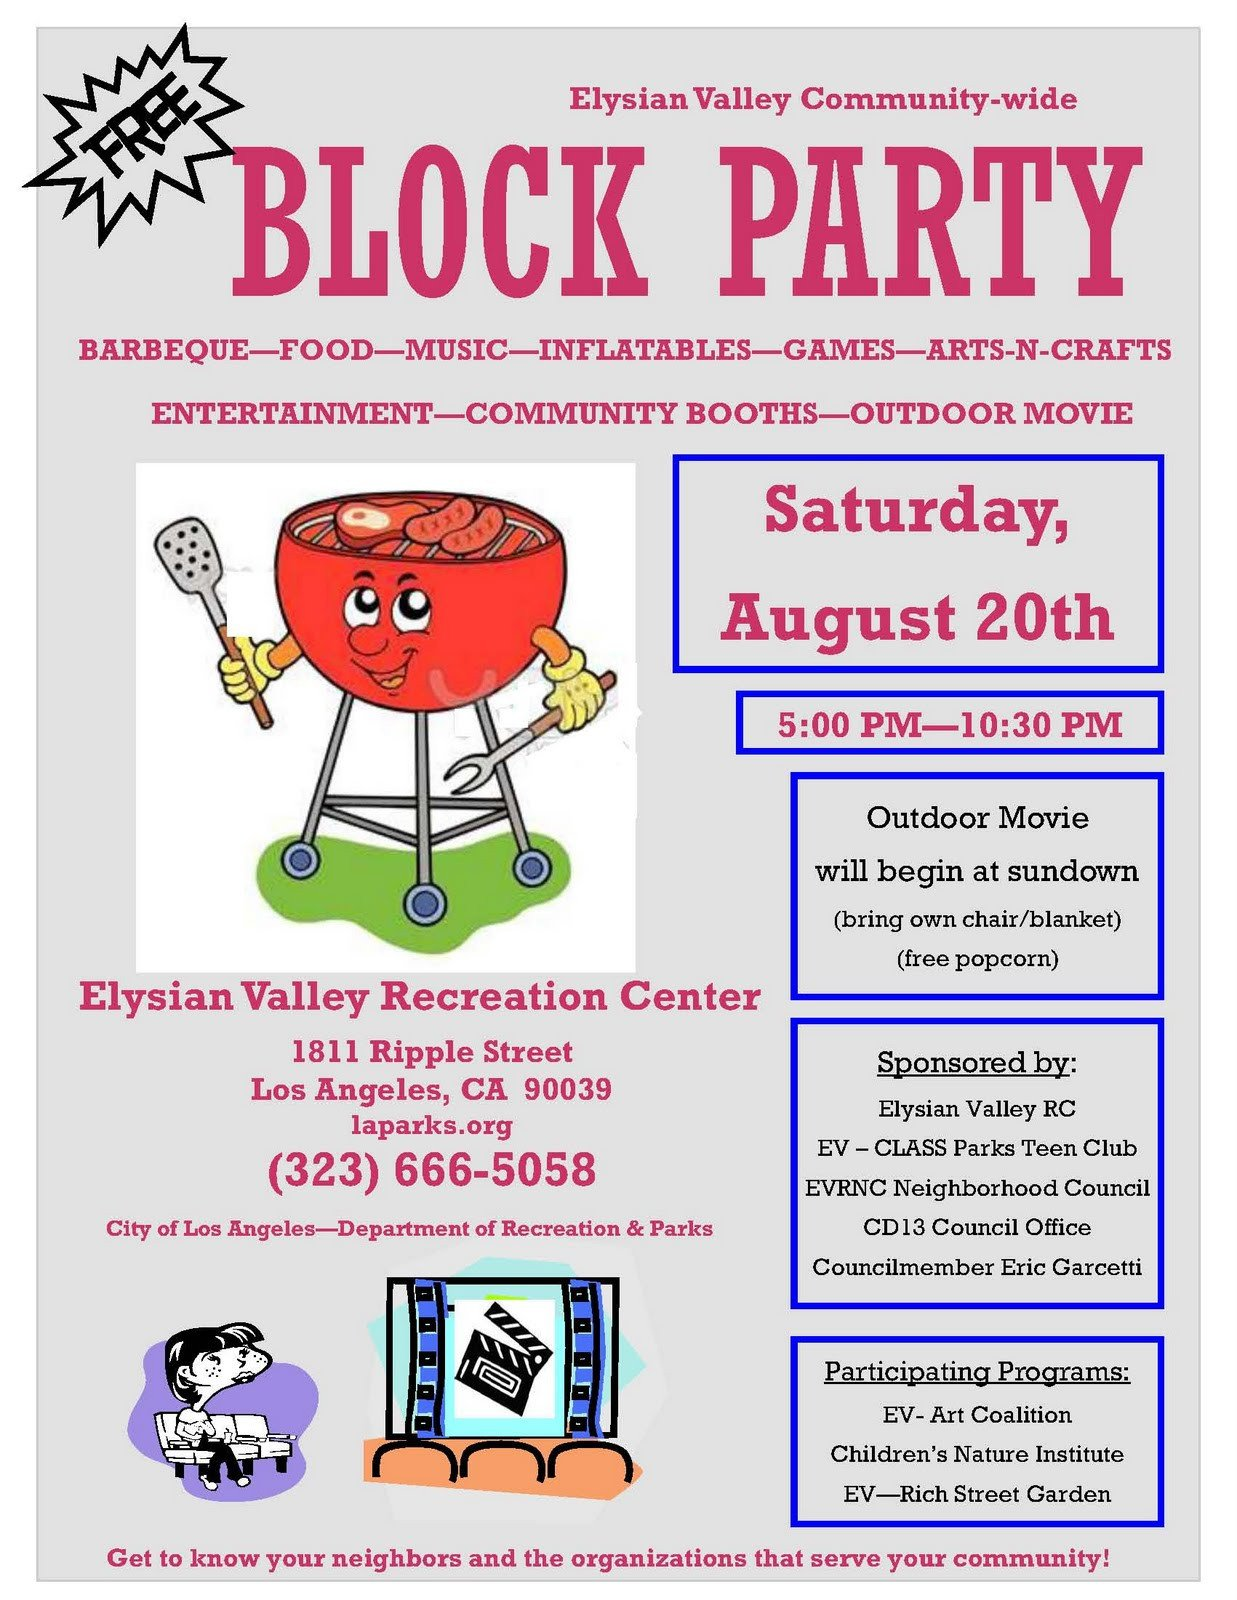 Block Party Flyer Templates Lacityorgcd13 Elysian Valley Block Party On August 20